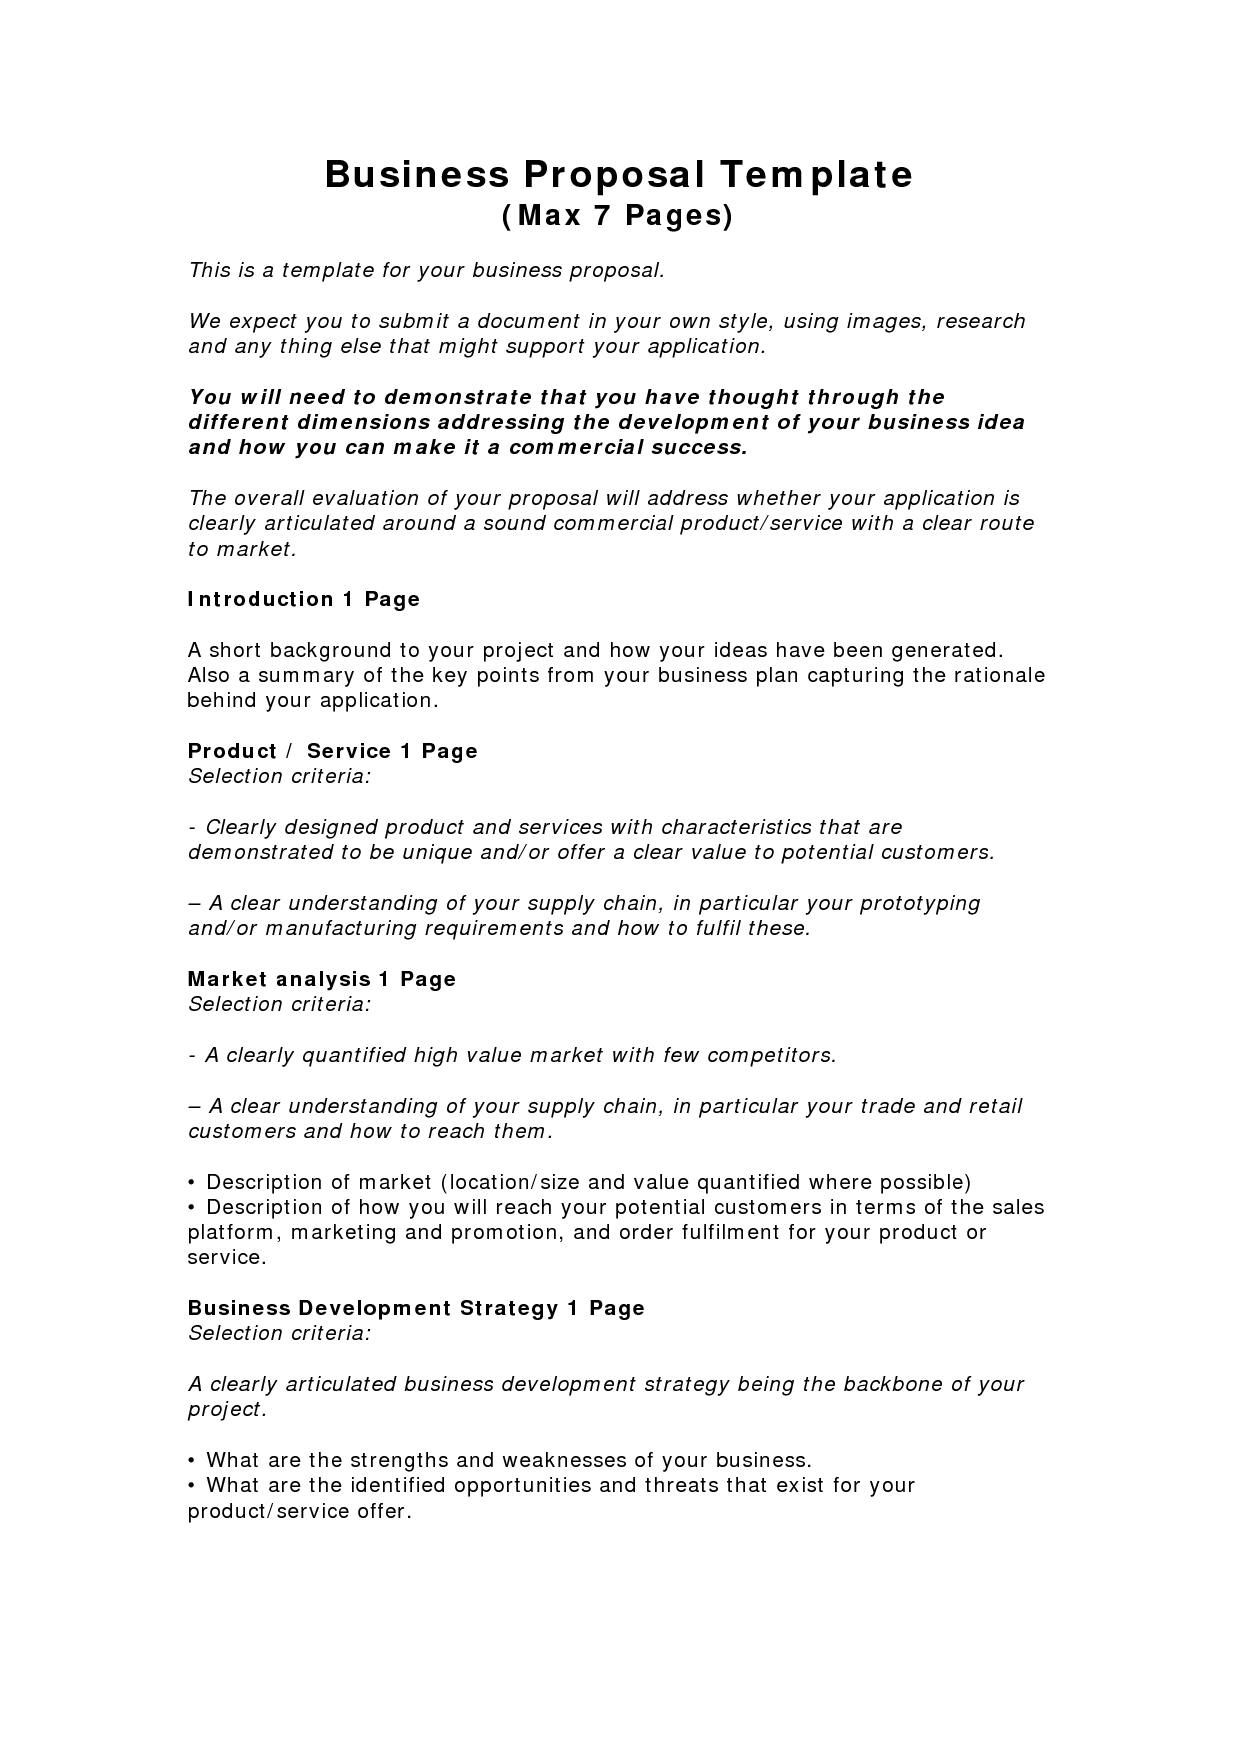 Business Proposal Templates Examples – Free Examples of Business Proposals